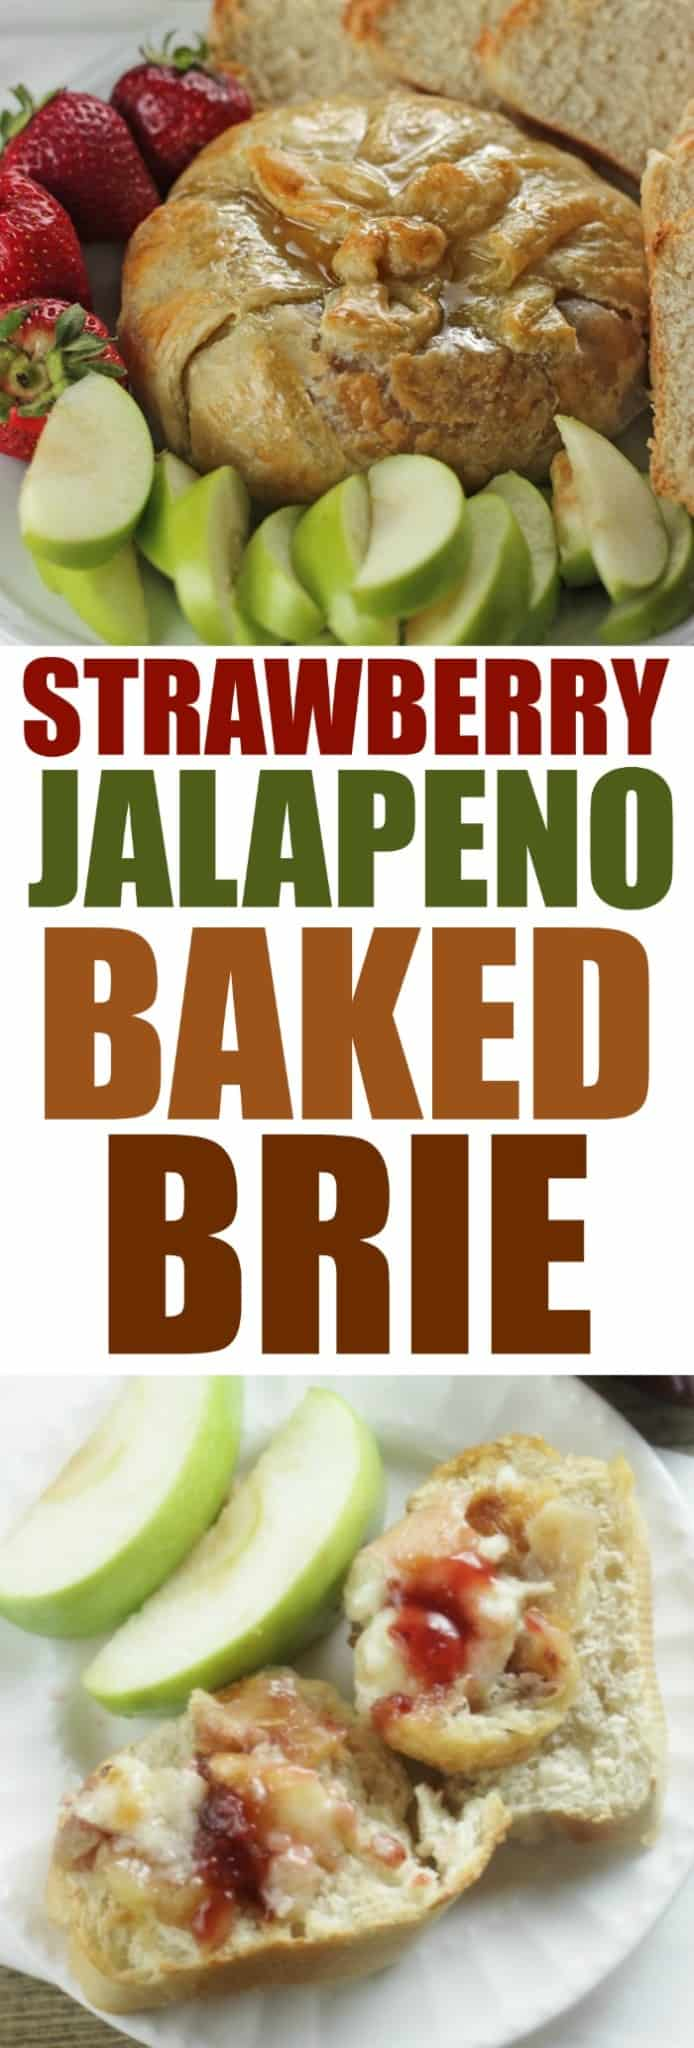 Strawberry Jalapeno Baked Brie Rose Bakes #SpreadtheHeat #CollectiveBias #ad